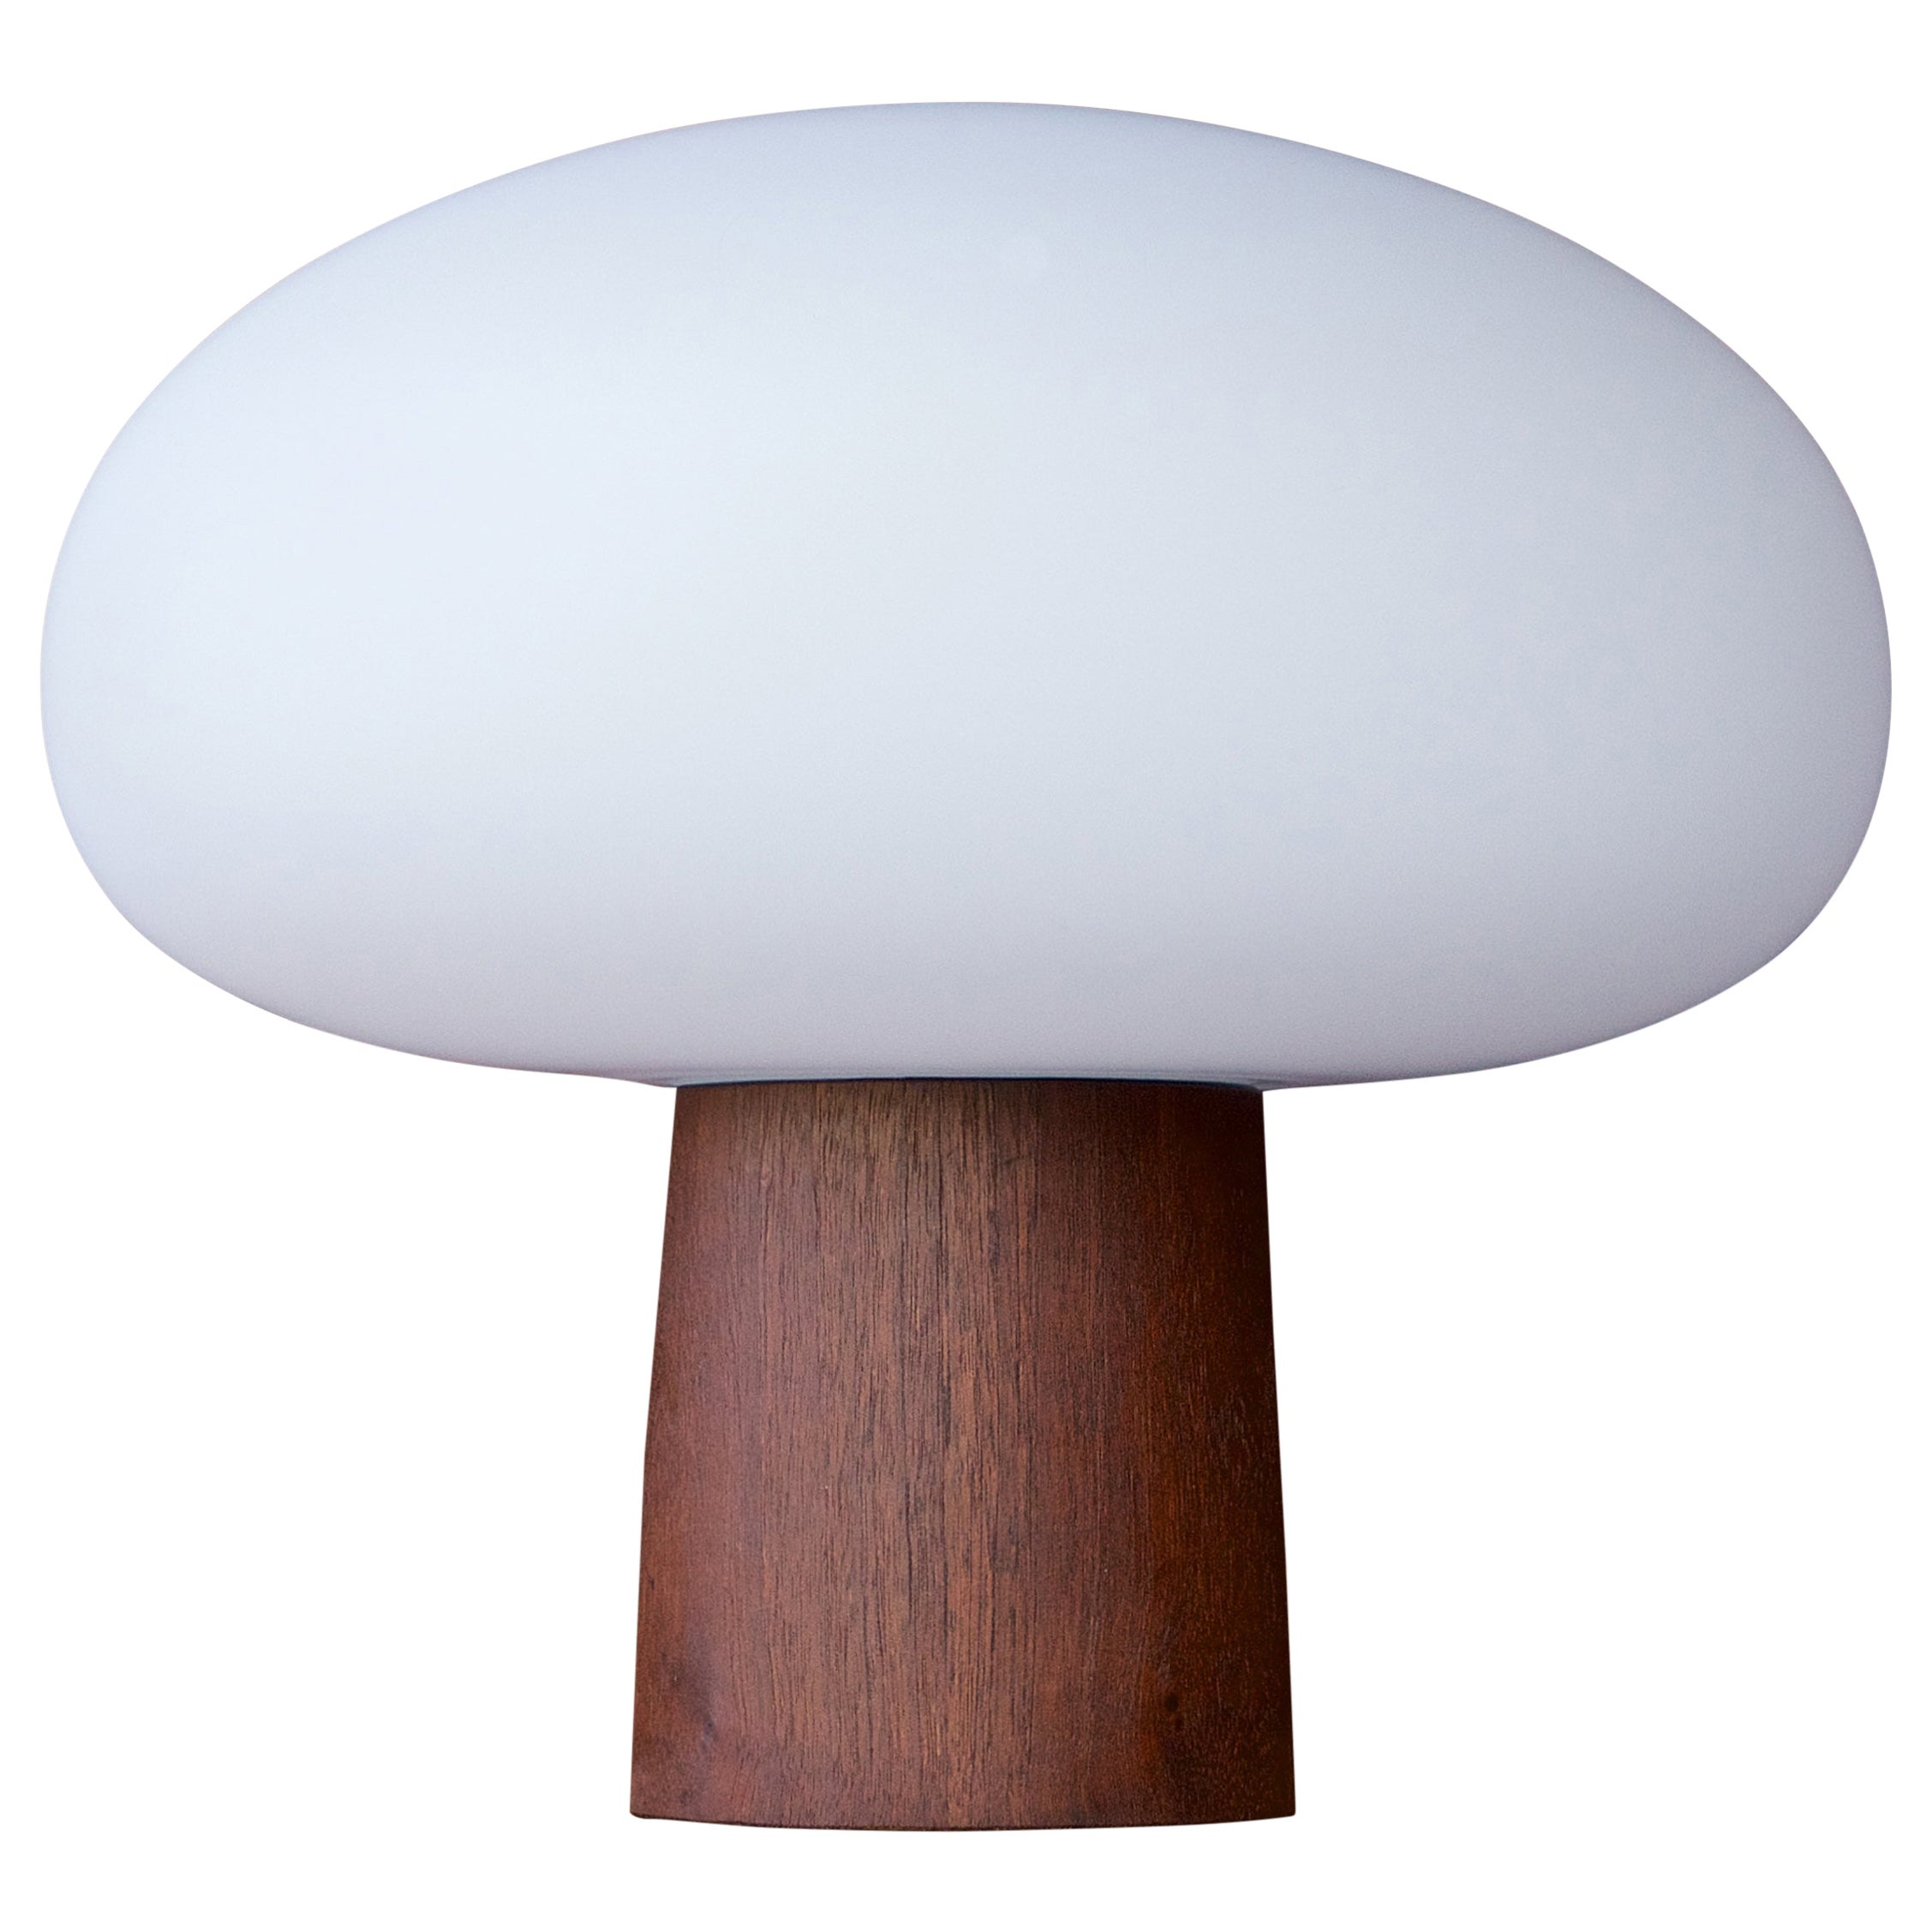 1960s Cabin Modern Laurel Walnut Glass Mushroom Table Lamp Vintage Midcentury